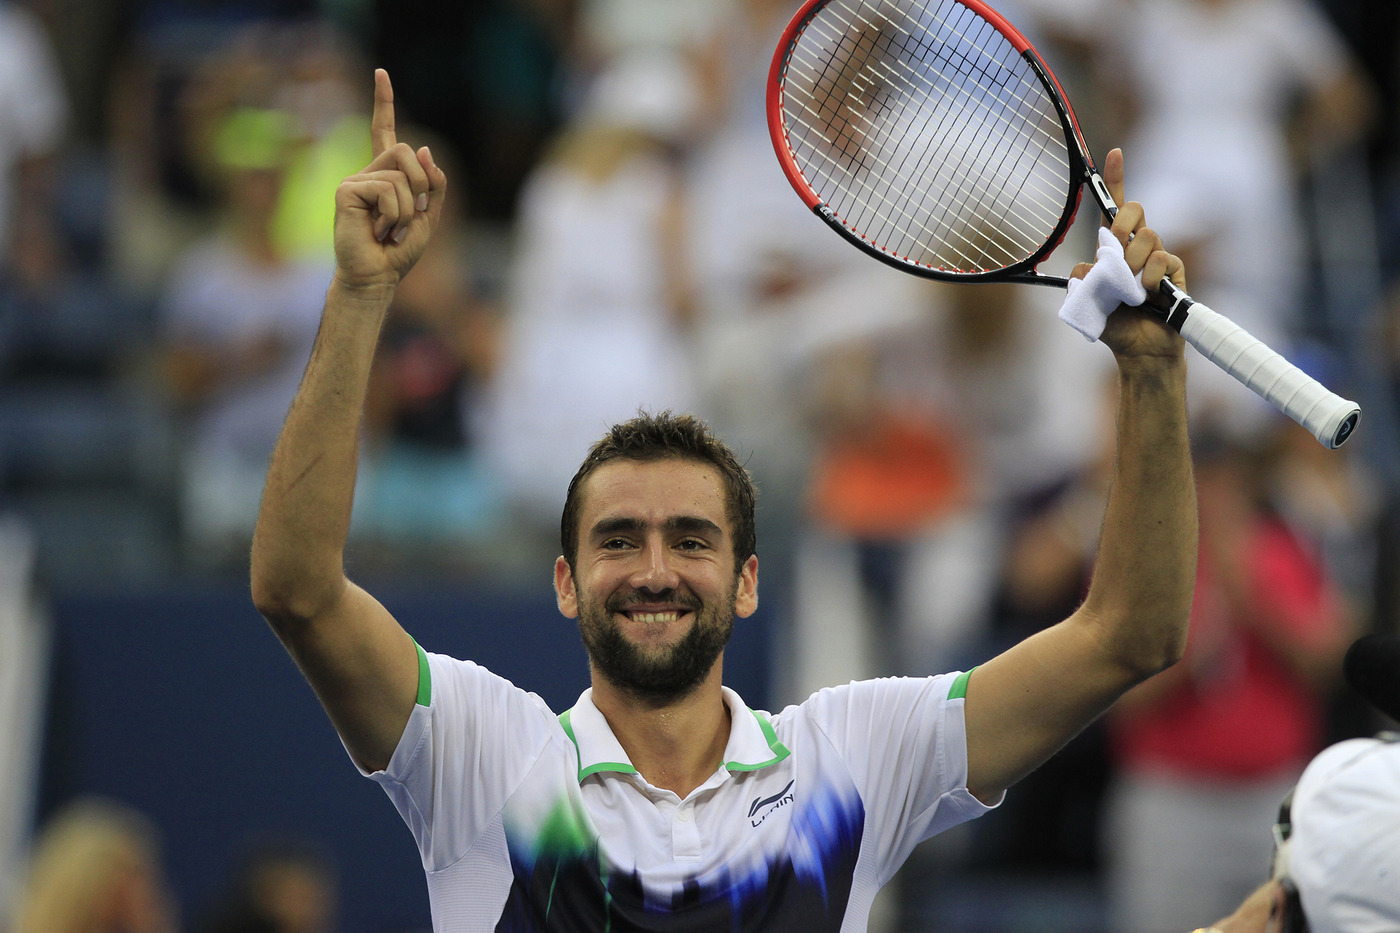 Cilic would make sure there would be no second comeback for Federer. 6-3, 6-4, 6-4 was the score, and the crowd - who lasted through a lengthy rain delay before the start of the match - was stunned.  - Philip Hall/usopen.org